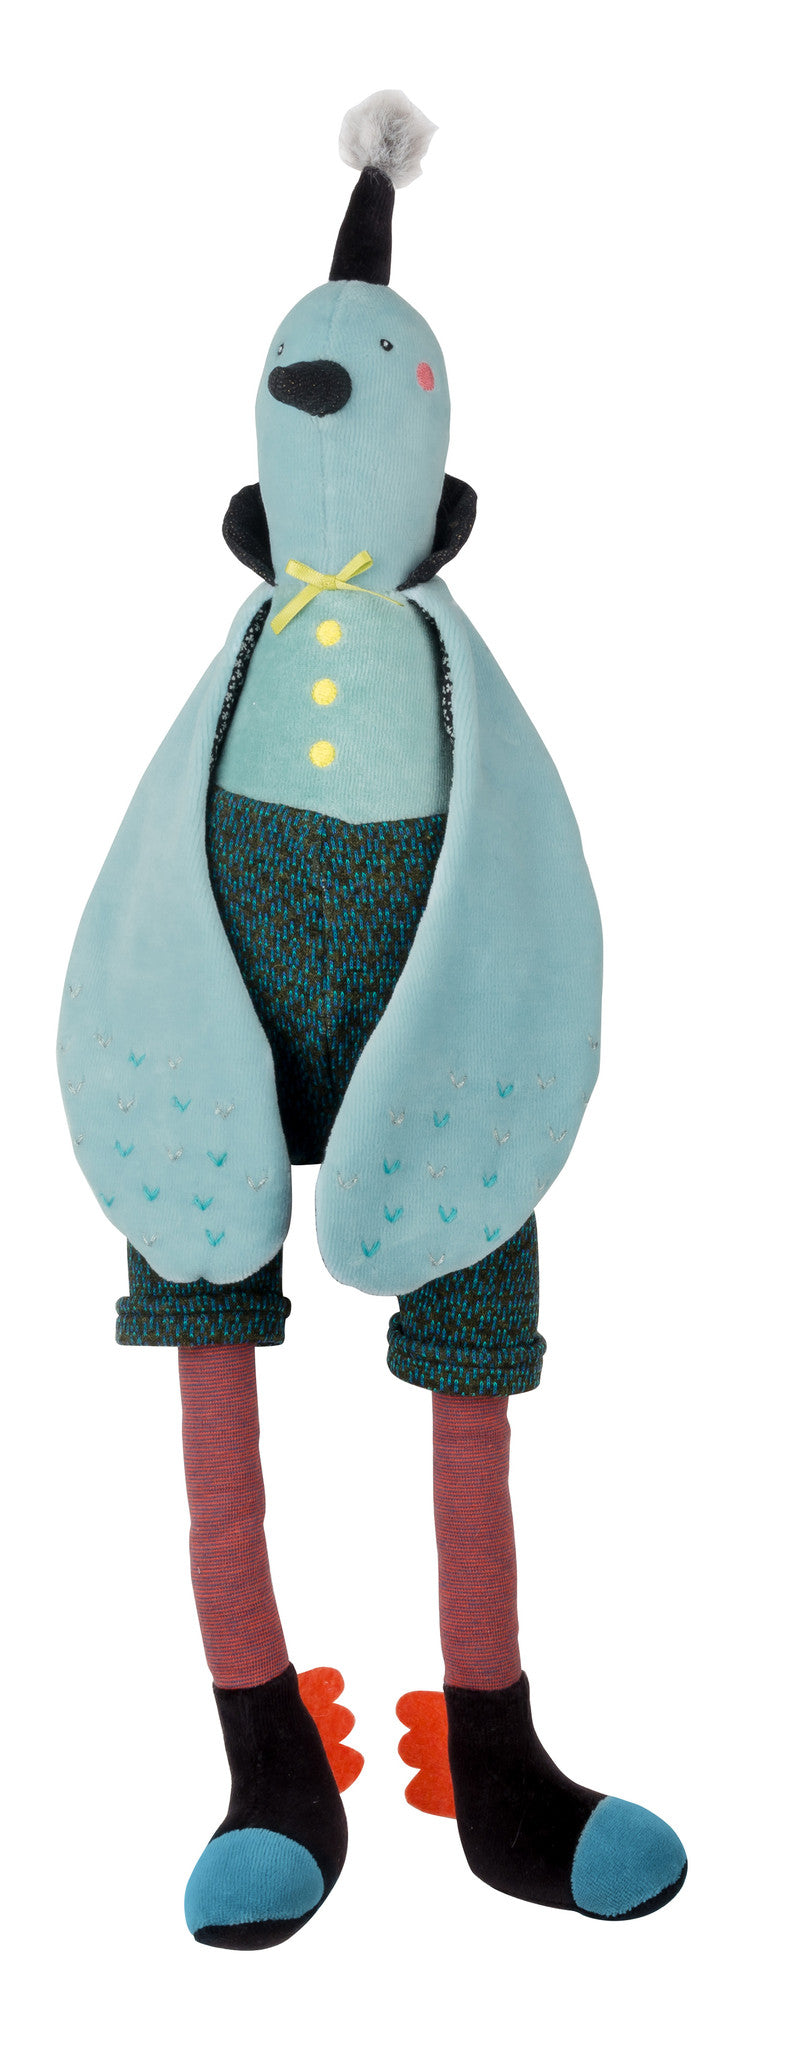 Moulin Roty - Augustin the bird